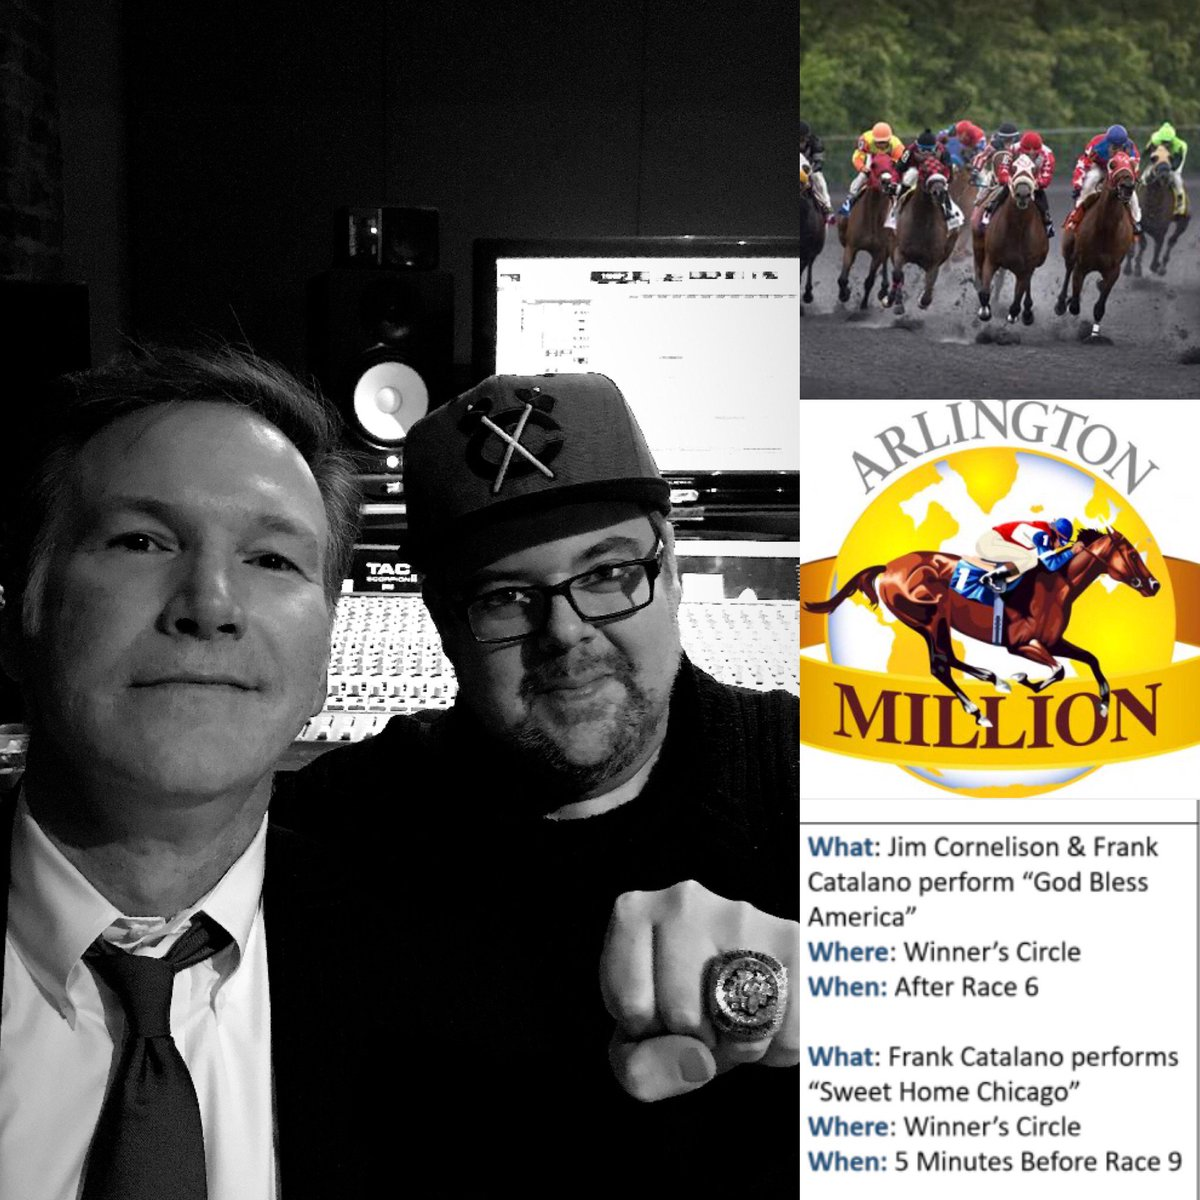 Ready to play @ArlingtonRacing #ArlingtonMillion with my bro Jim Cornelison  #Chicagojazz #NationalAnthem #chicagoblackhawks #GodBlessAmerica #sweethomechicago @Anthem_Singer<br>http://pic.twitter.com/rQf2hXSv4H